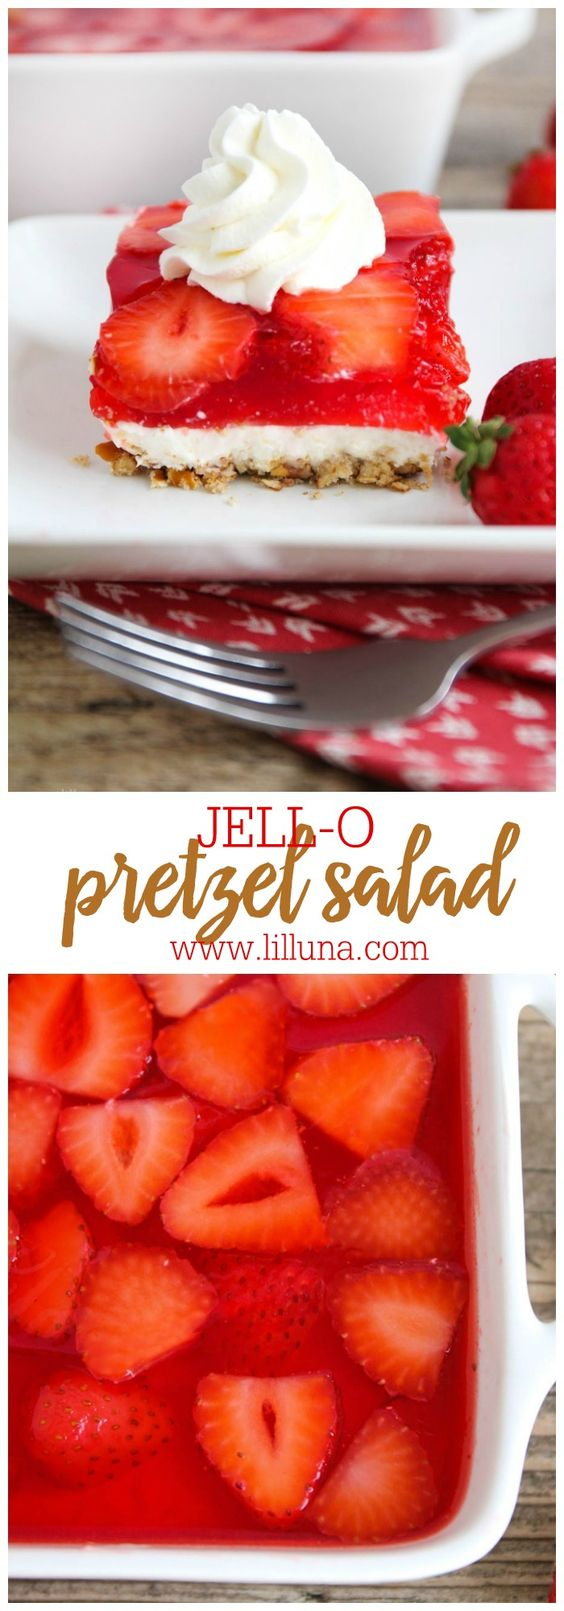 JELLO Pretezel Salad - a class holiday and summer treat with a pretzel crust, cream cheese layer and strawberry jello topping!